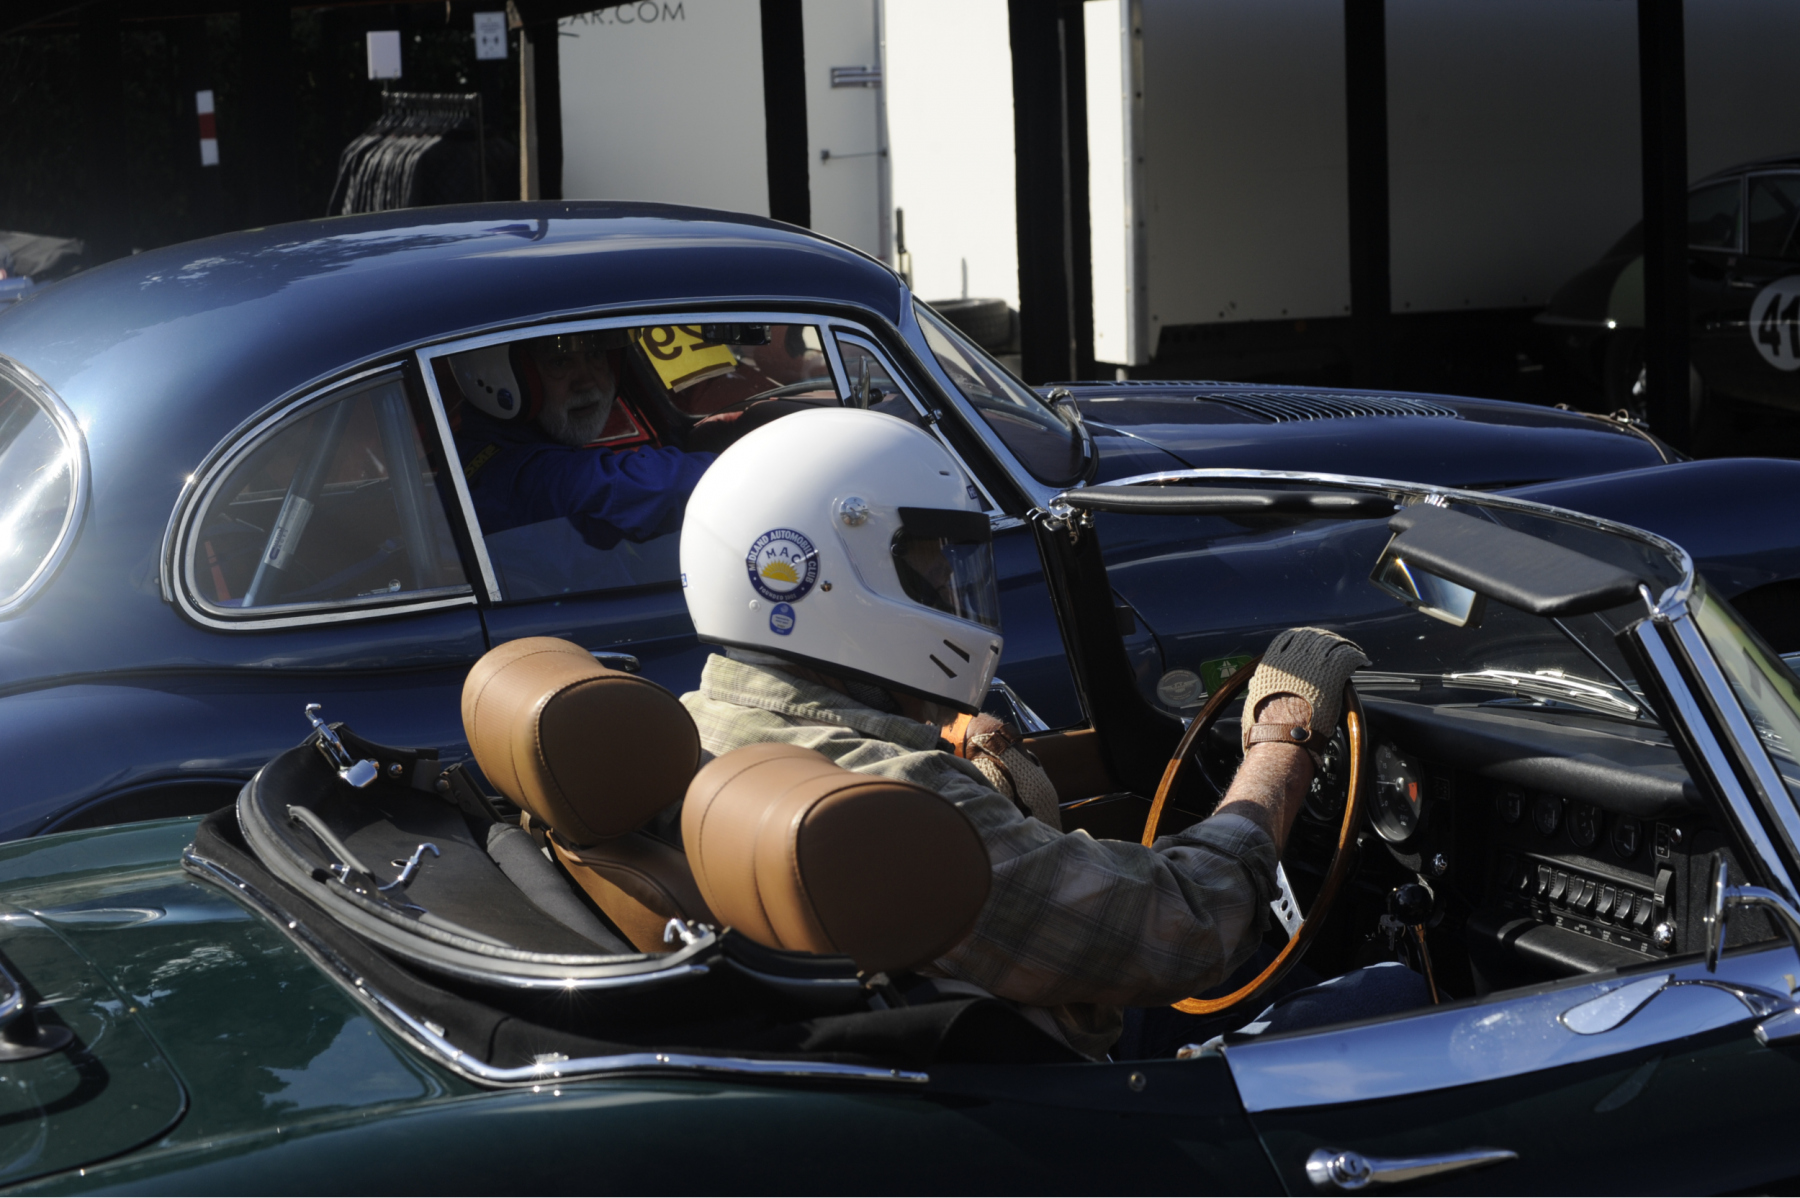 E-type-60-Saturday-photo-by-Abigail-Humphries-84